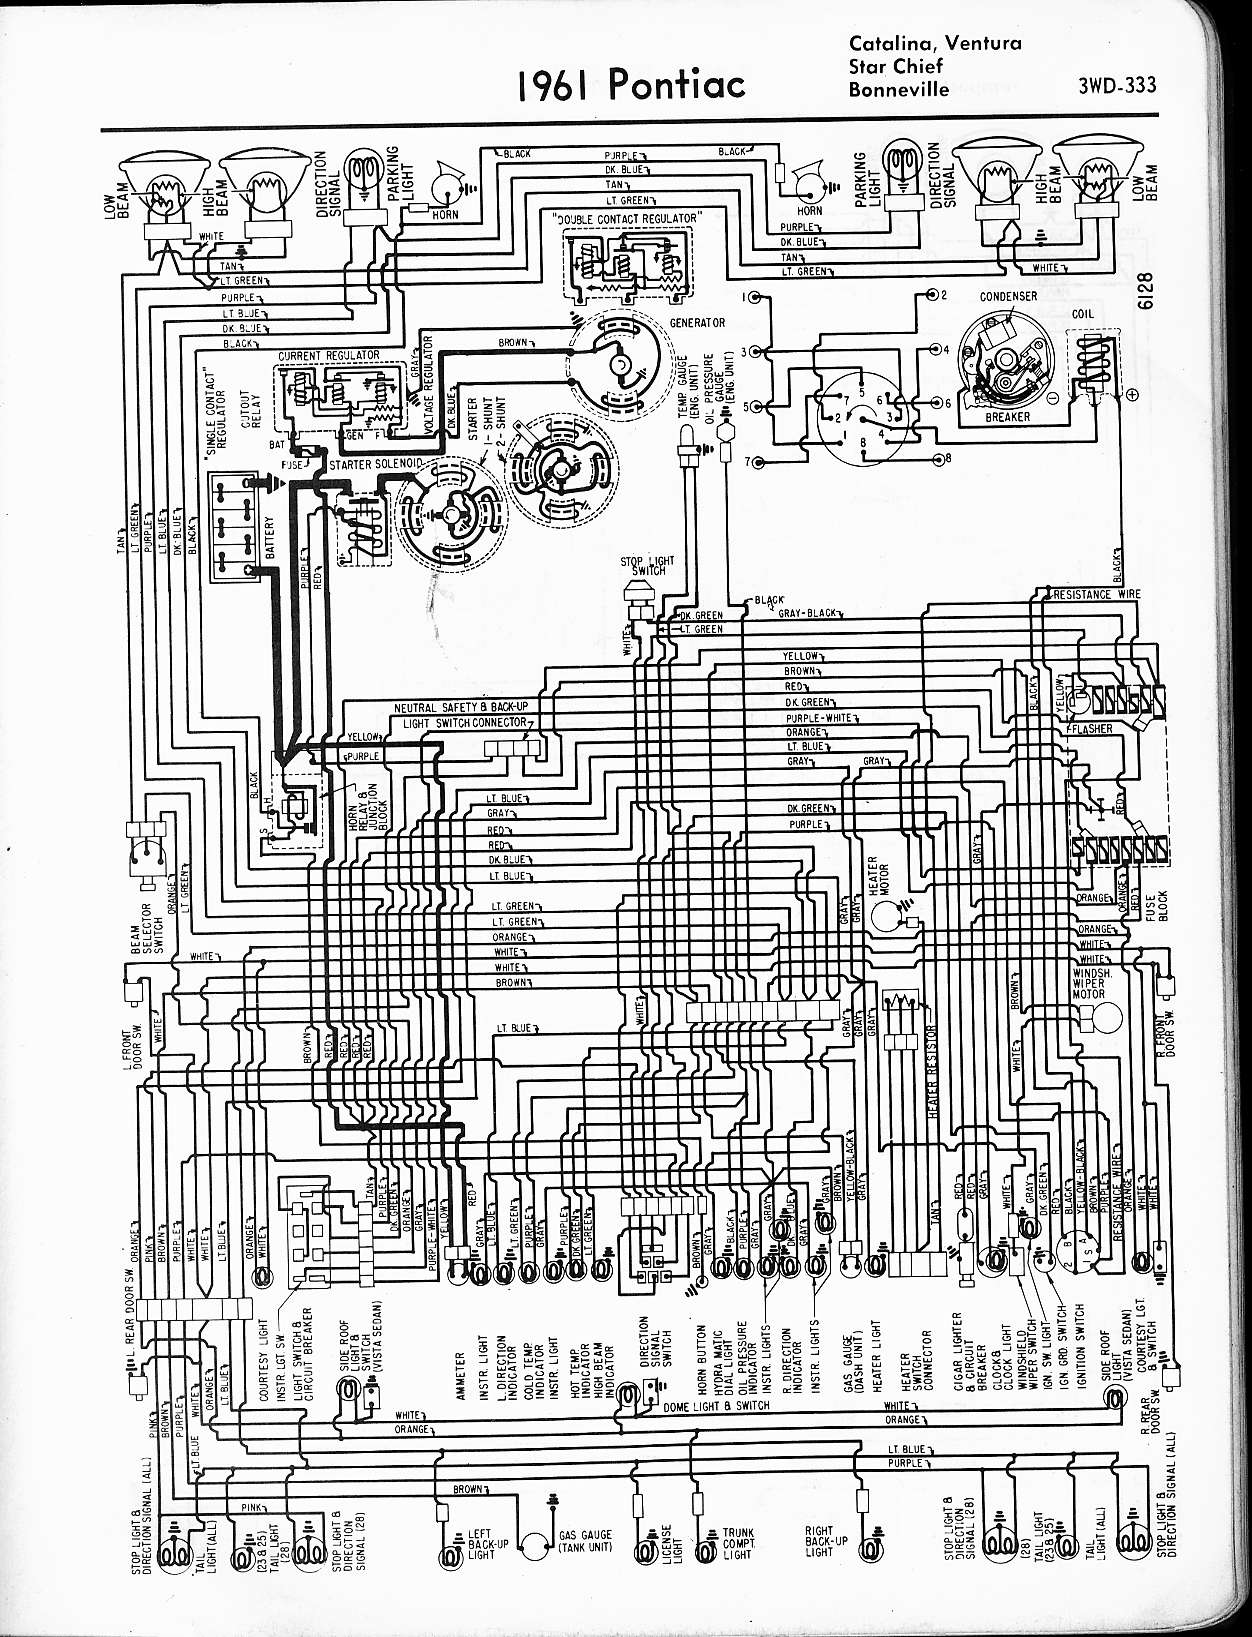 Pontiac Fuse Box Diagram Wiring Library G6 Location 1971 Gto Layout Diagrams U2022 Rh Laurafinlay Co Uk 1968